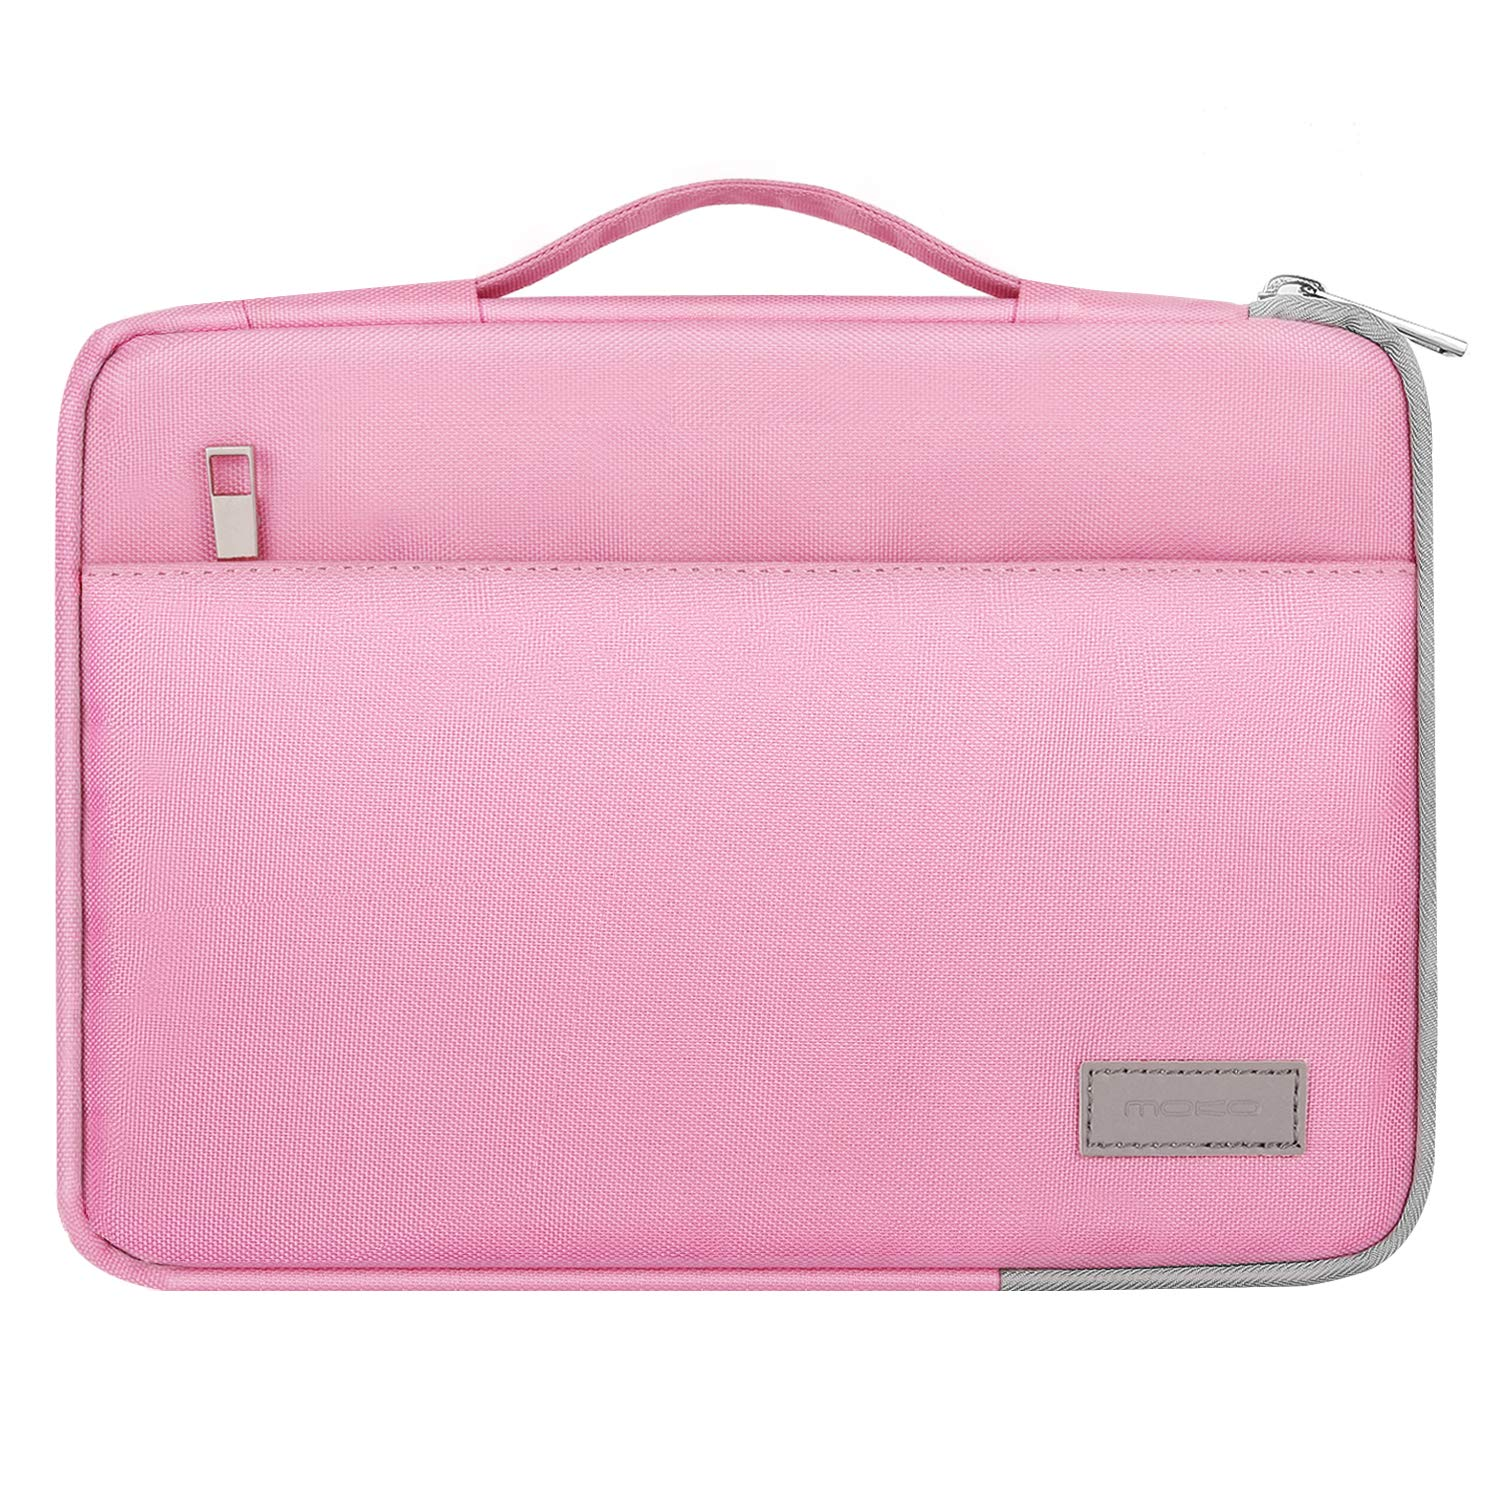 MoKo 8-10.1 Inch Kids Tablet Sleeve Case, Polyester Zipper Carrying Case Bag Fits Fire HD 10 / HD 8 Kids Edition, Kindle Fire HD 10.1 Inch 2019, with Accessory Pocket - Pink